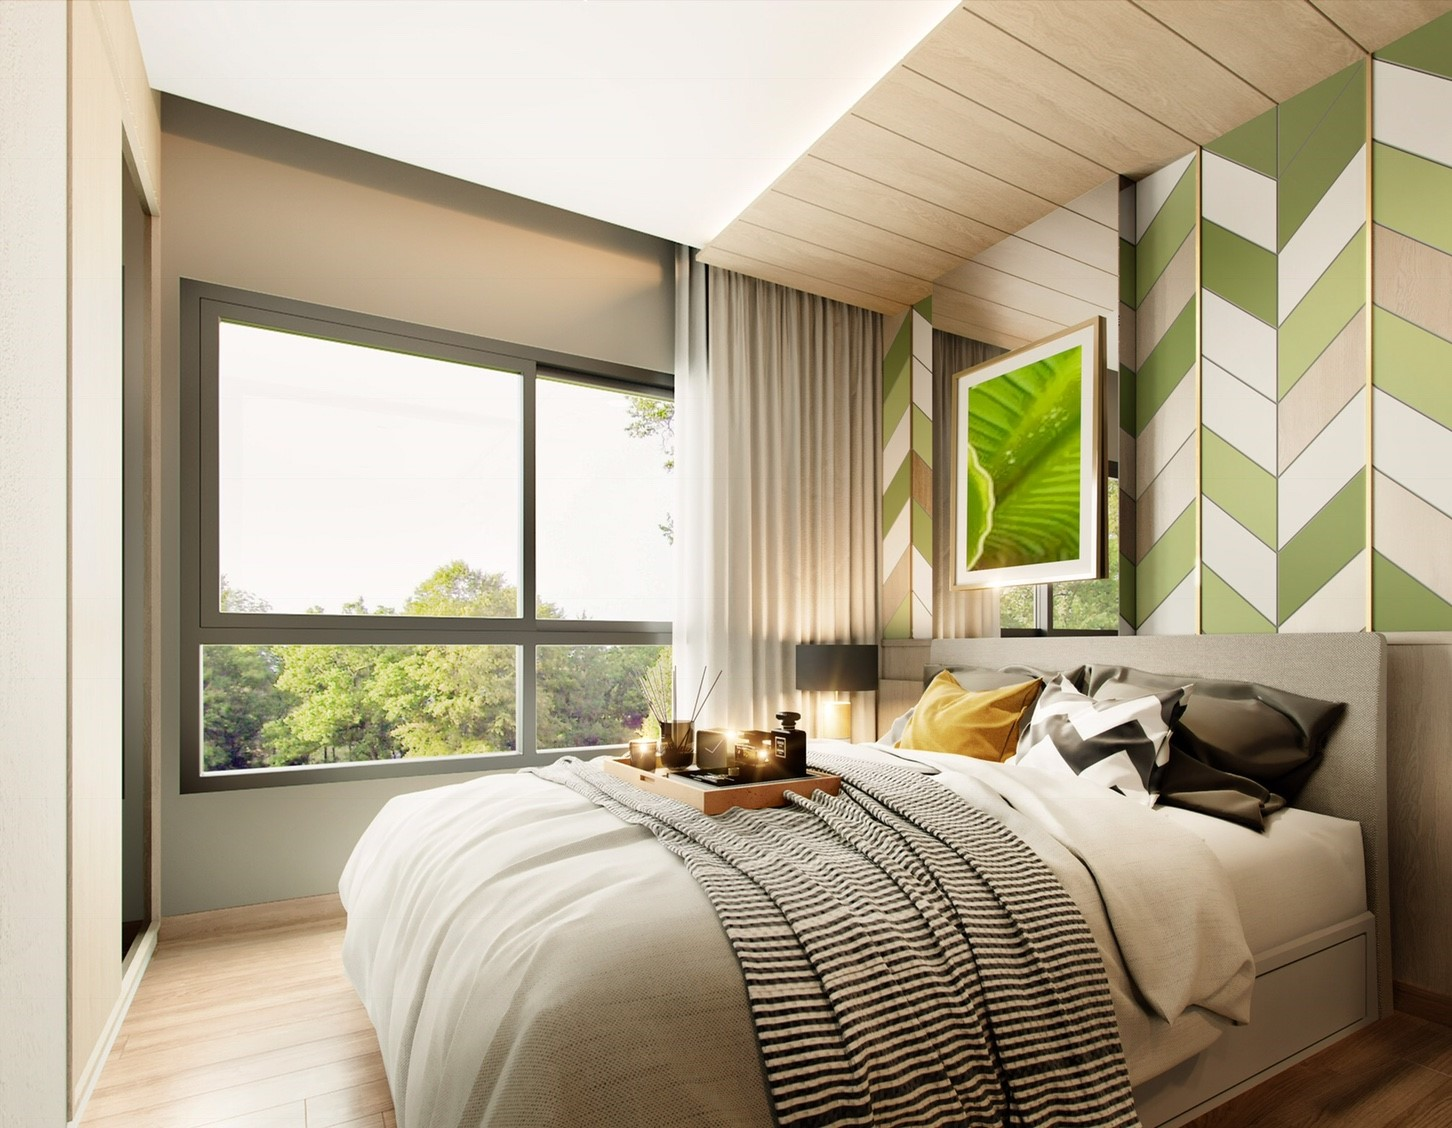 Bedroom Design @Grene